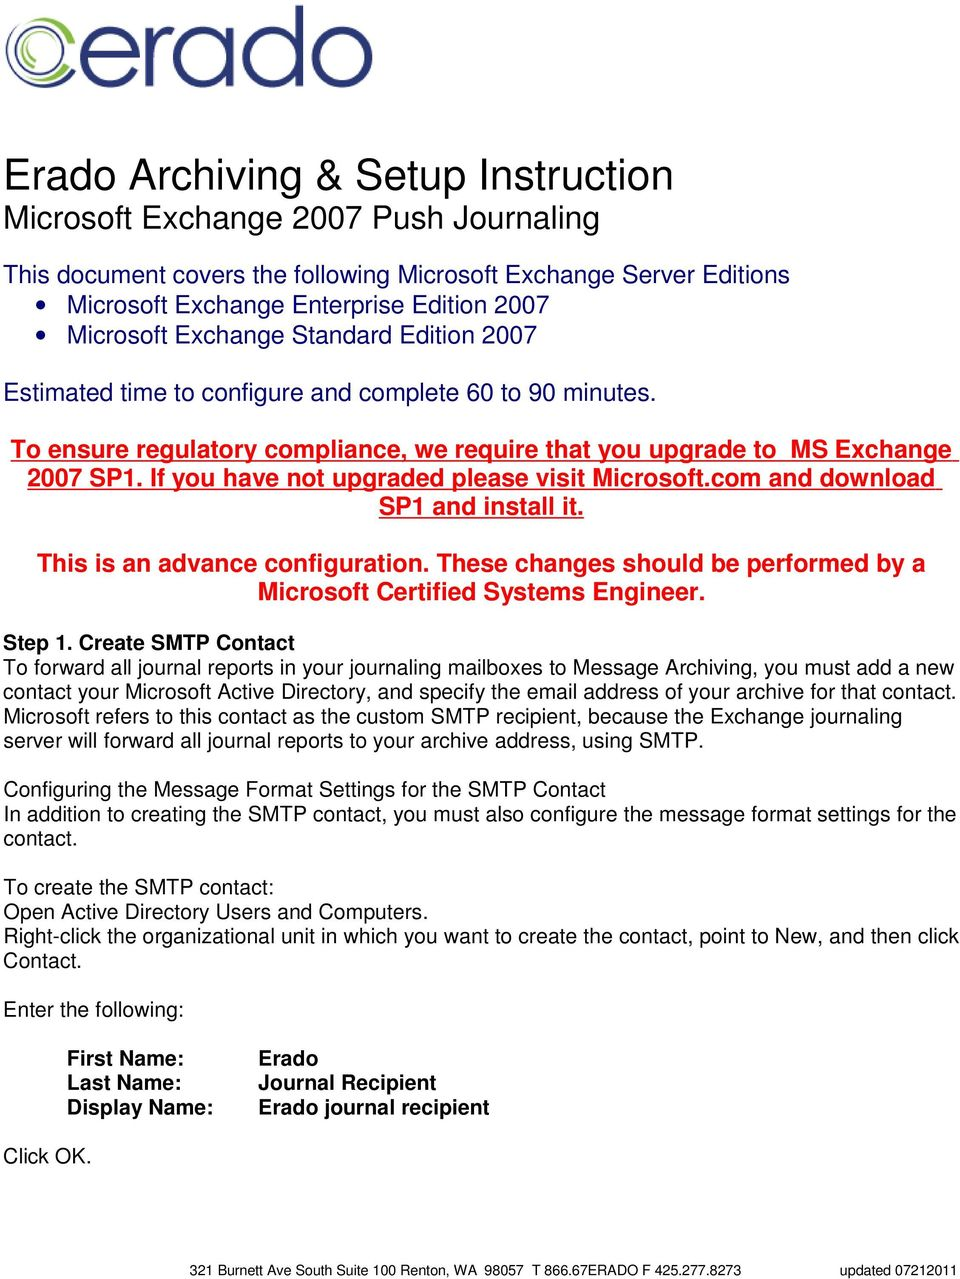 If you have not upgraded please visit Microsoft.com and download SP1 and install it. This is an advance configuration. These changes should be performed by a Microsoft Certified Systems Engineer.